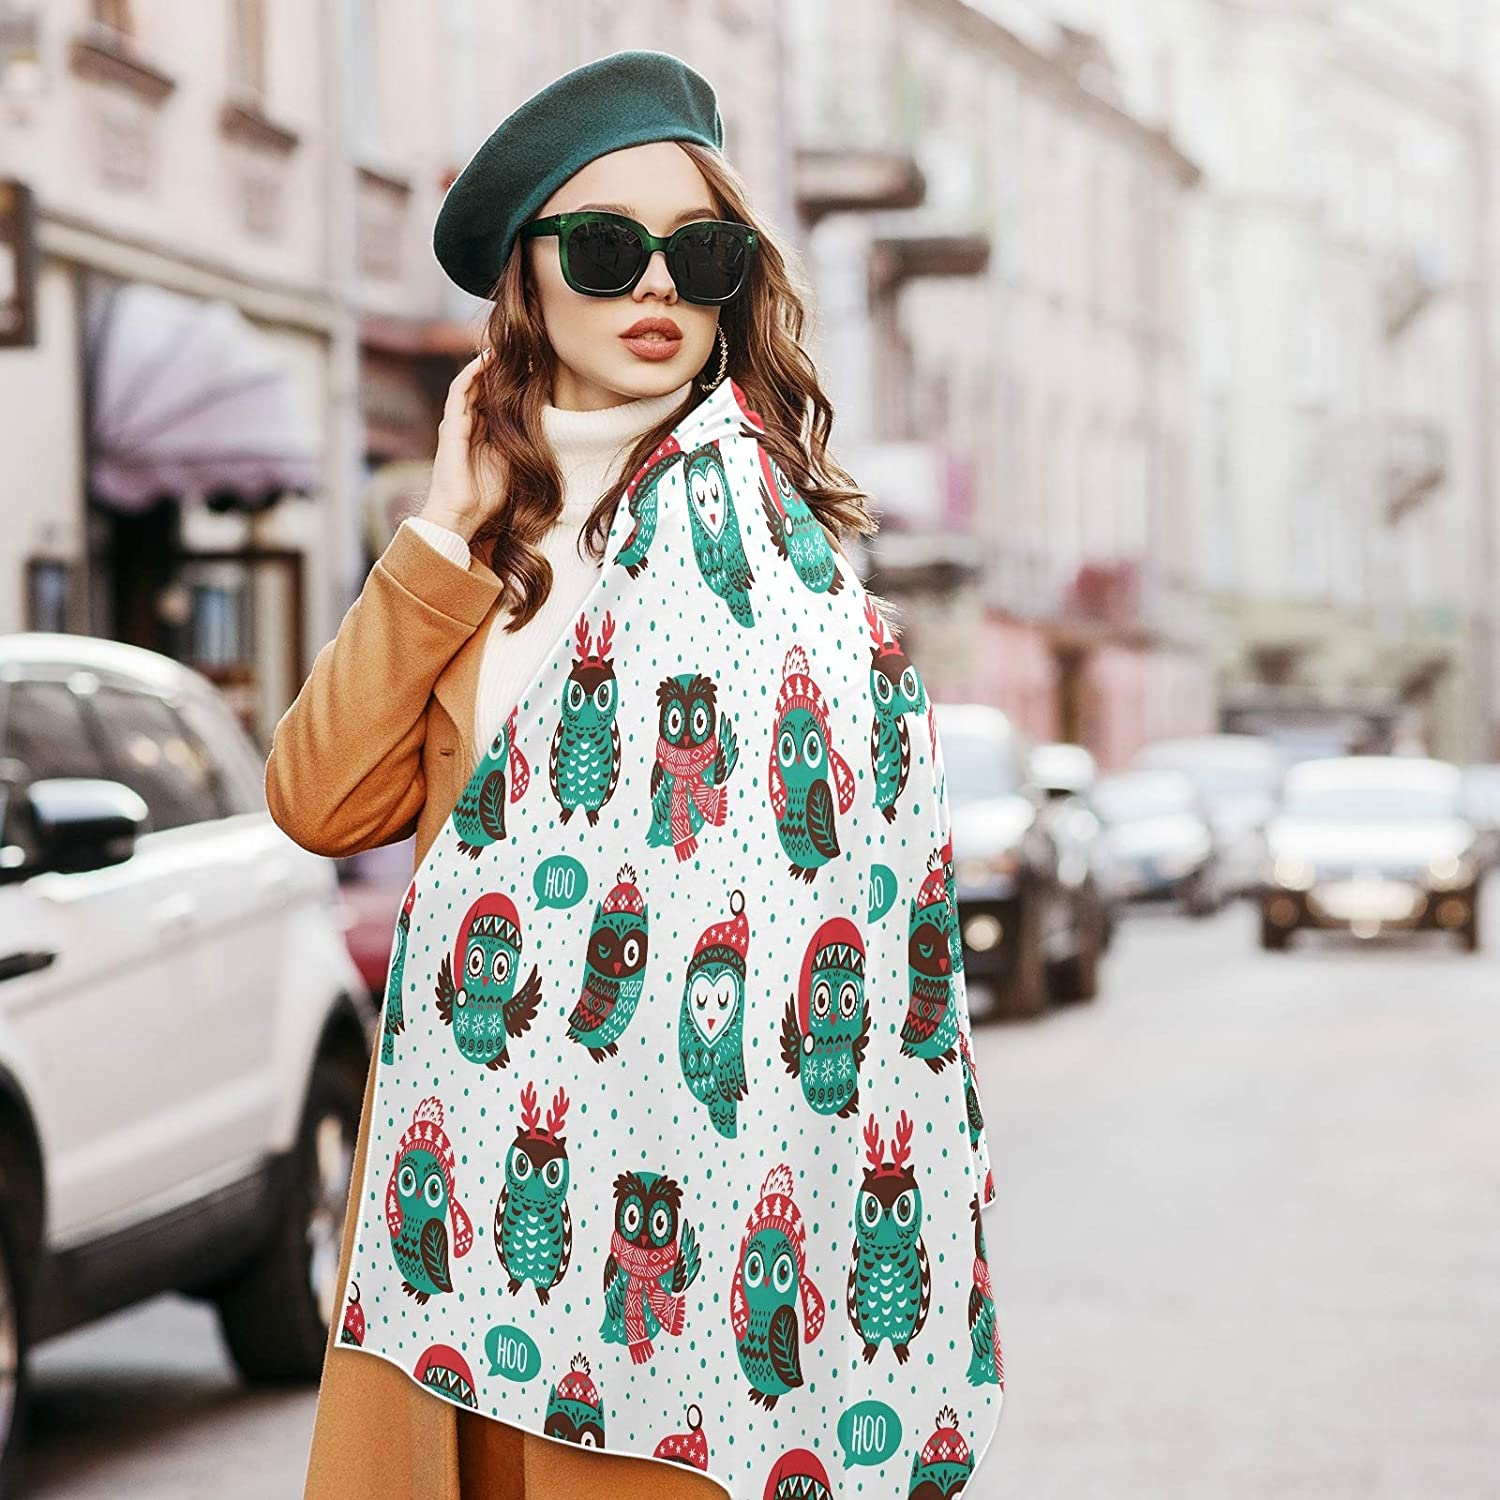 Scarf for Women and Men Christmas Owls Reindeer Antlers Blanket Shawl Scarf wraps Soft warm Winter Oversized Scarves Lightweight